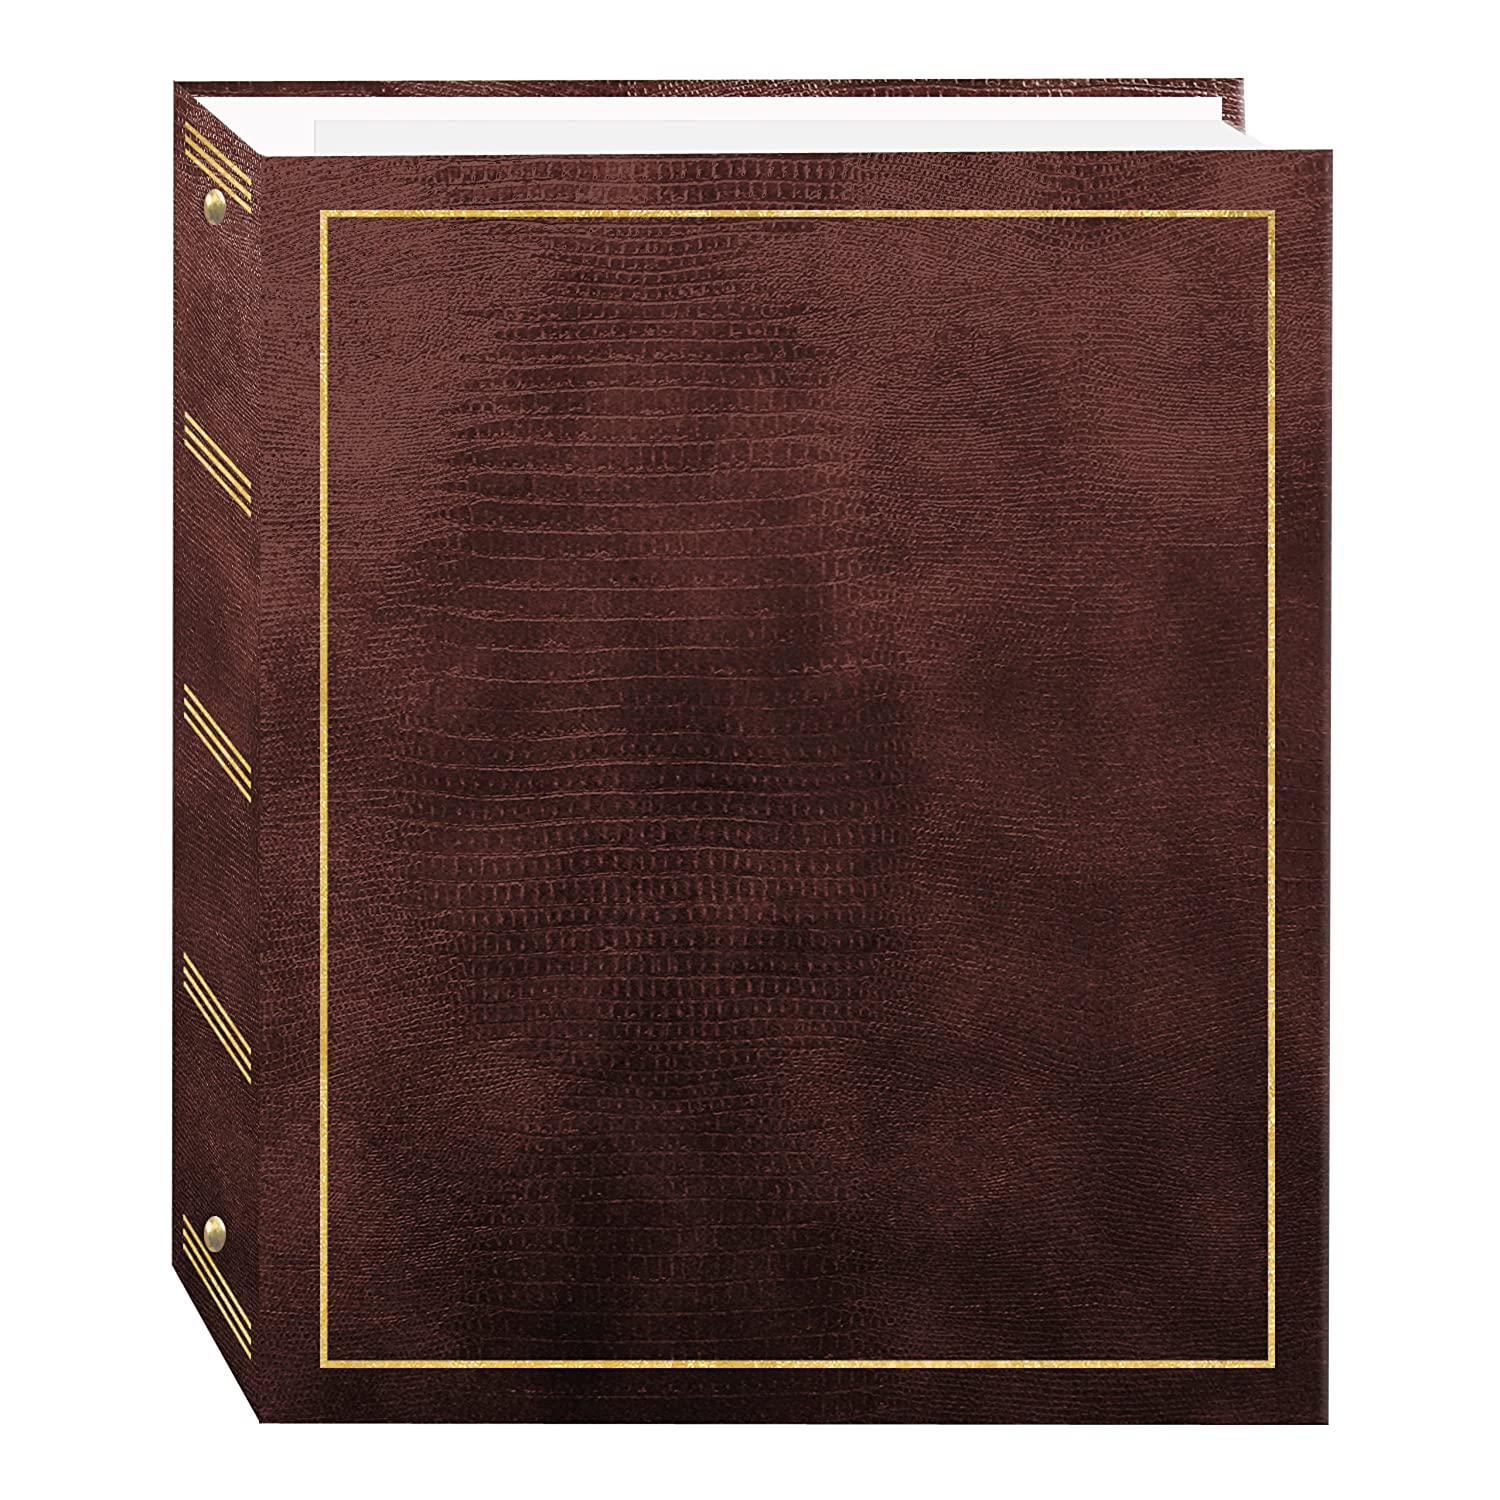 Magnetic Self-Stick 3-Ring Photo Album 100 Pages (50 Sheets), Brown Pioneer Photo Albums inc. LM-100/BN